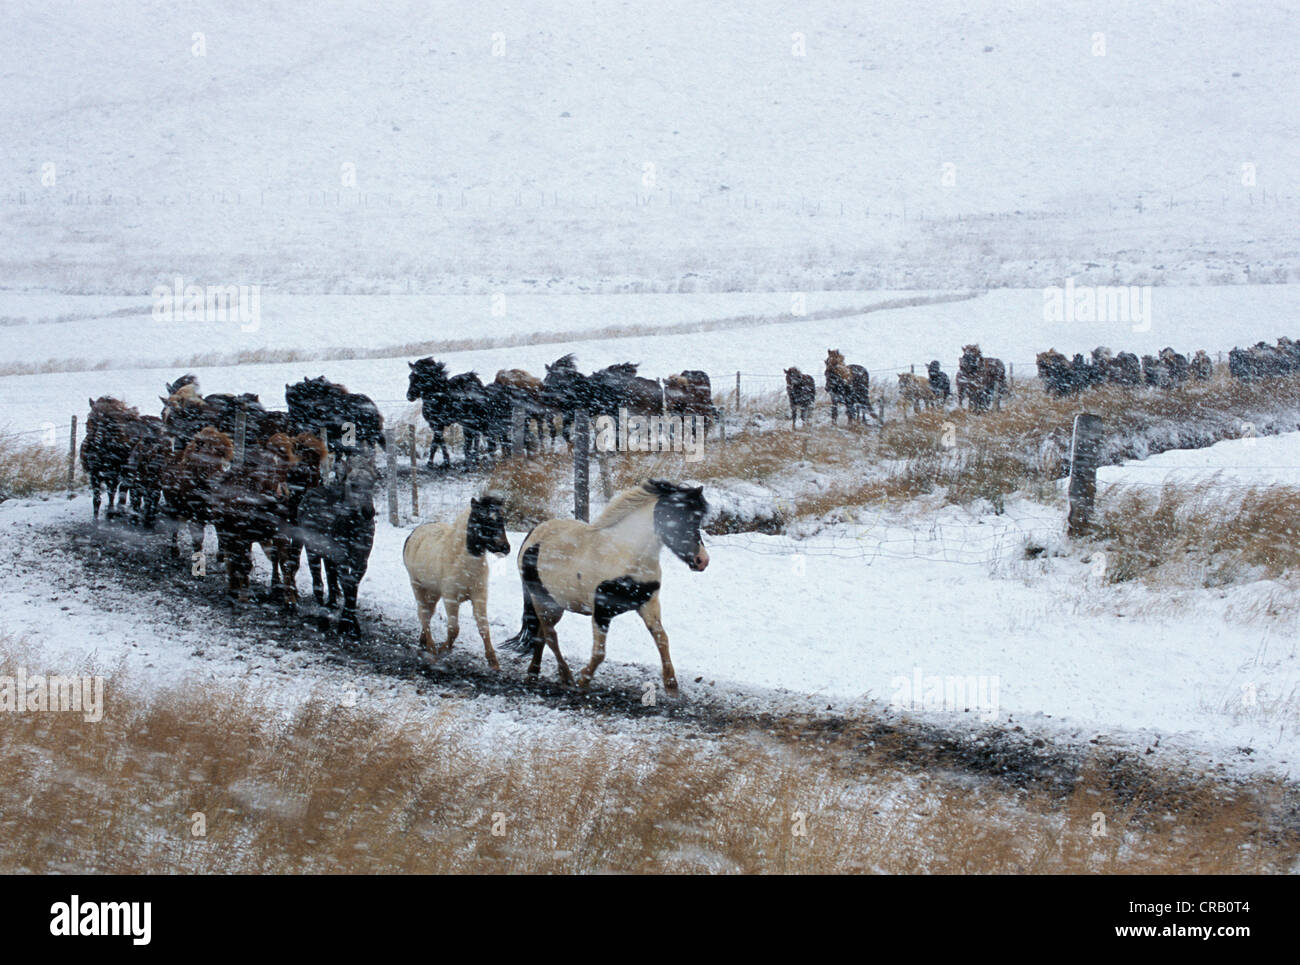 Iceland horses being rounded up in the snow for Laufskalarett, the biggest horse round up in Island, Hjaltadalur - Stock Image